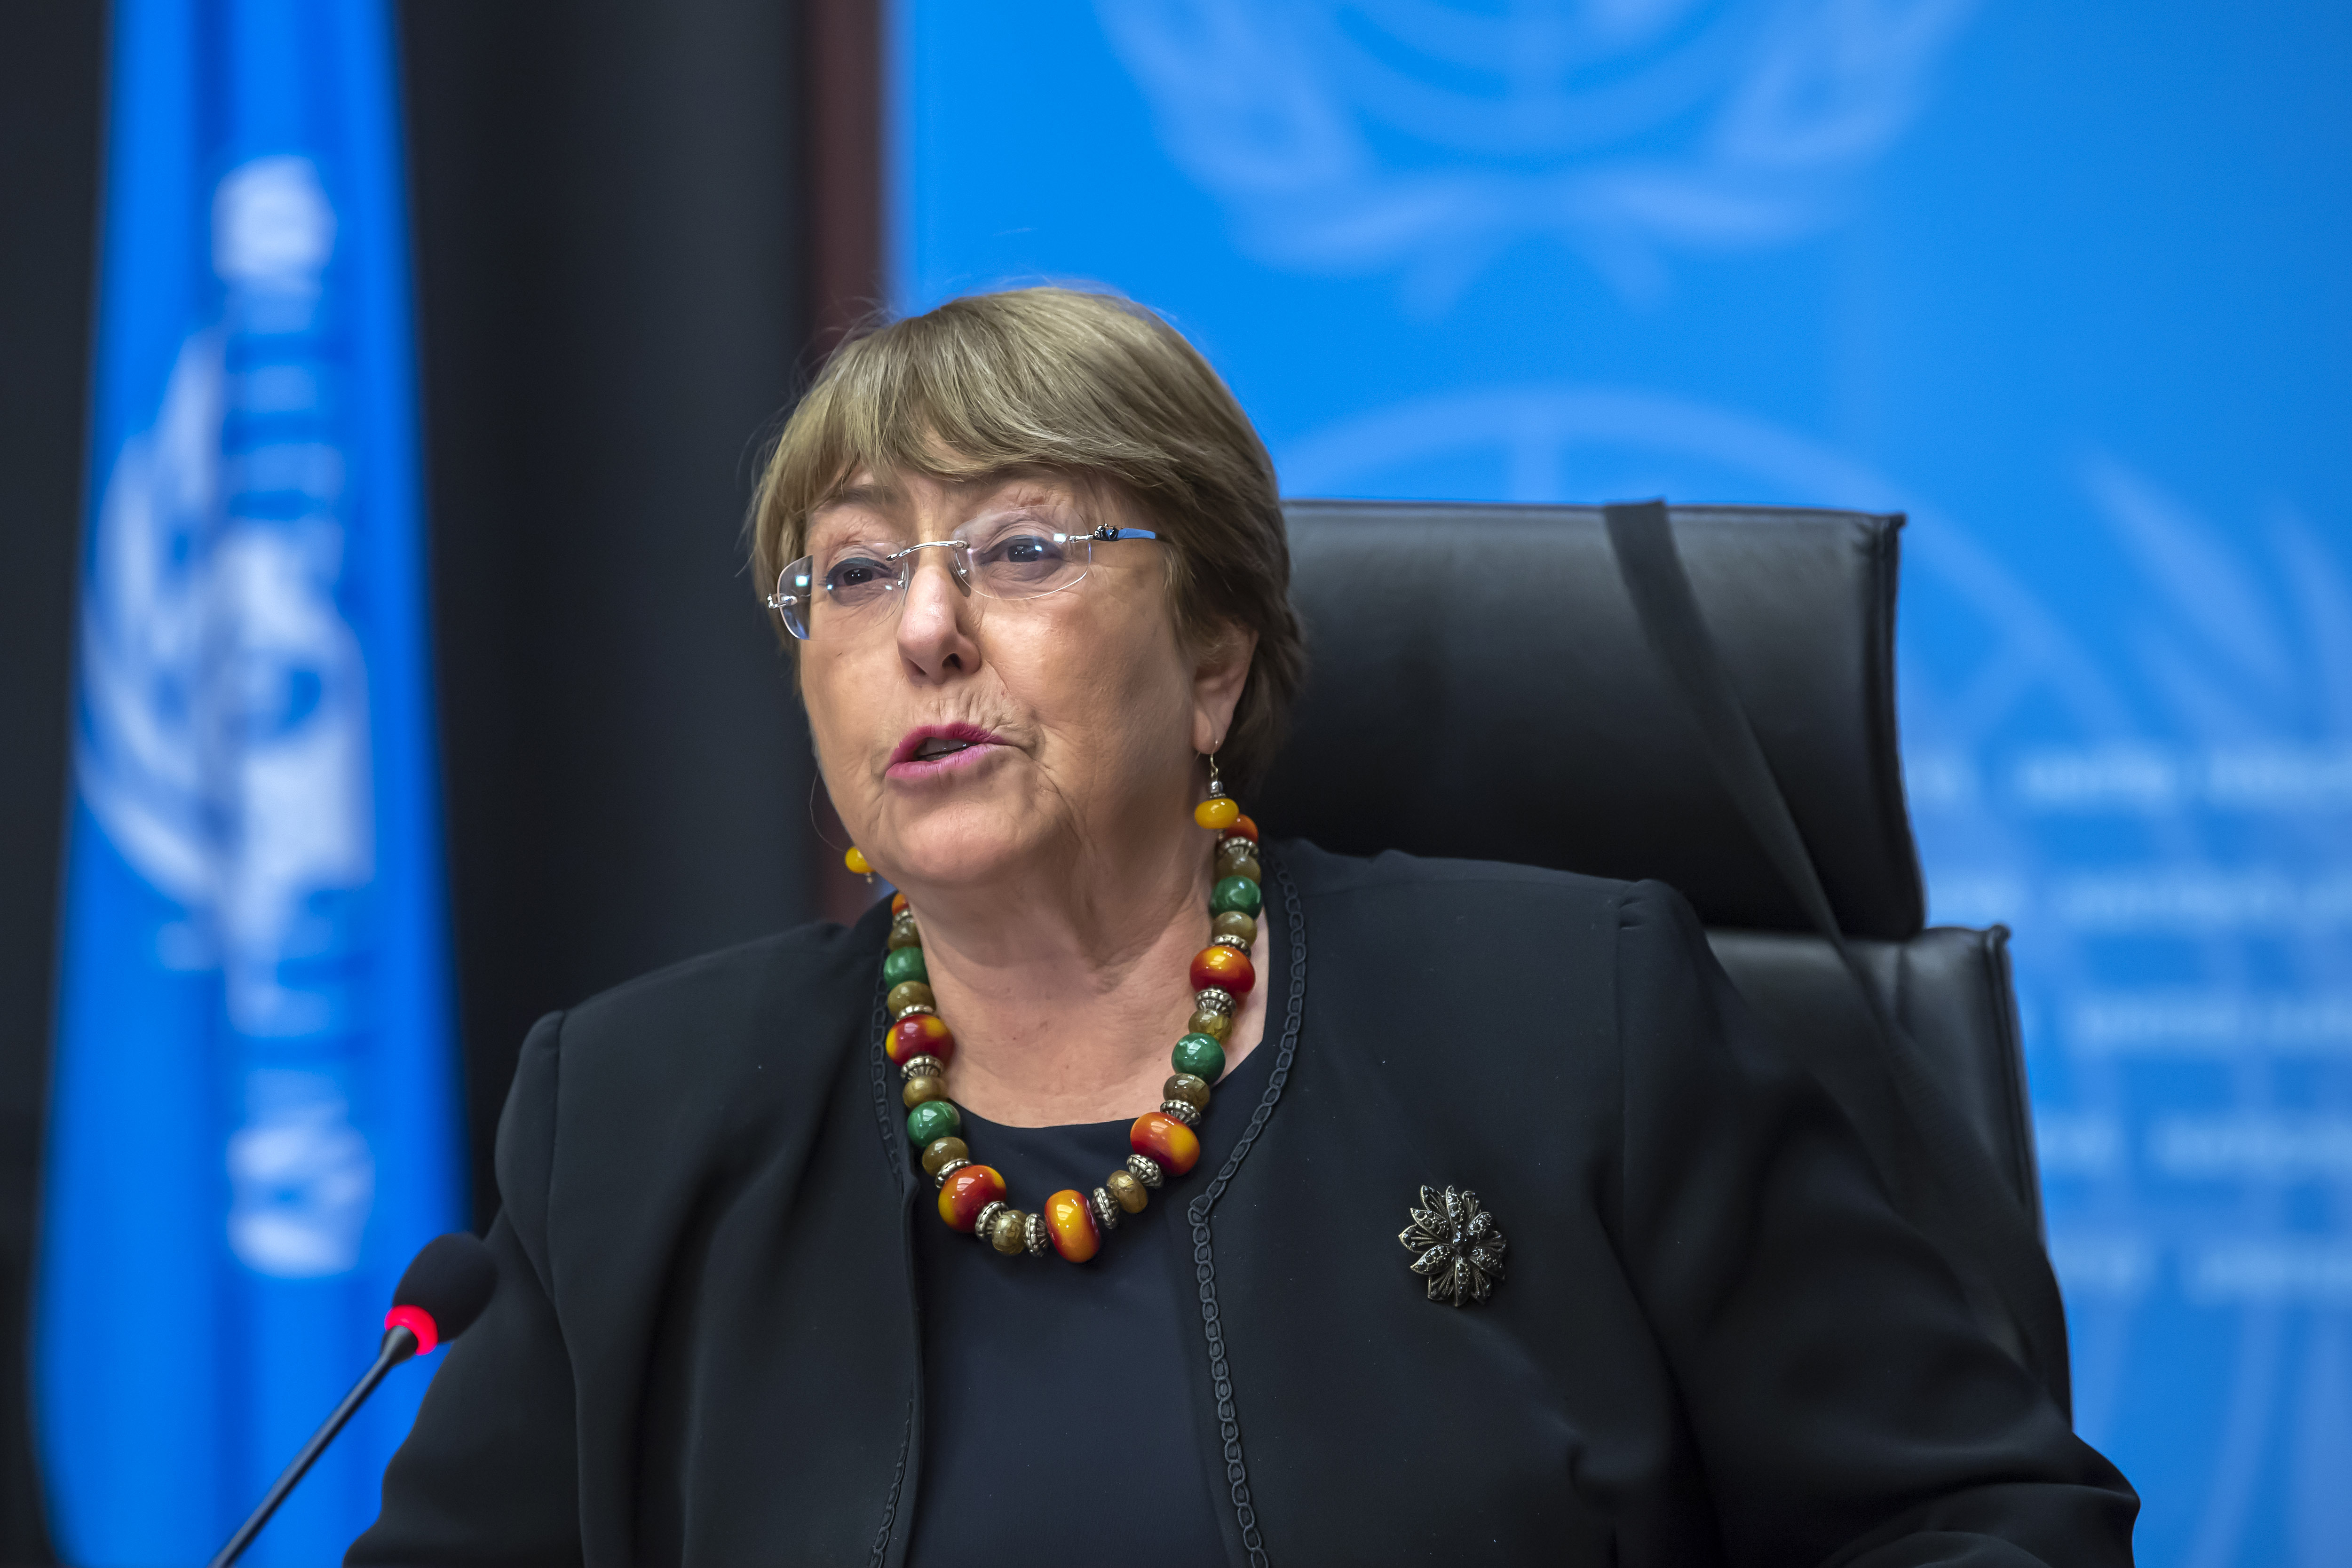 Michelle Bachelet, U.N. High Commissioner for Human Rights, speaks during a press conference at the European headquarters of the United Nations in Geneva, Switzerland, on Dec. 9, 2020.